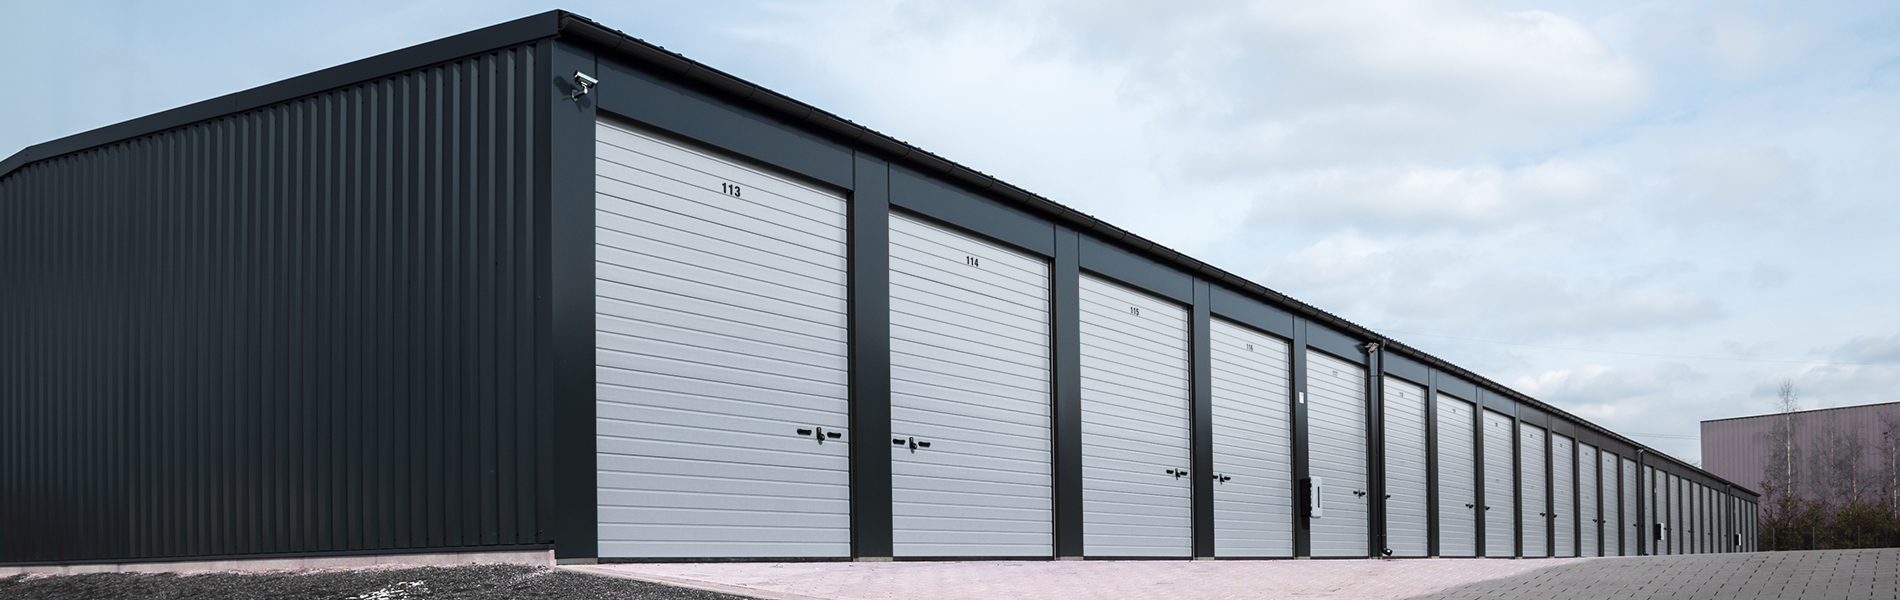 Interstate Garage Doors Burleson, TX 682-738-1531